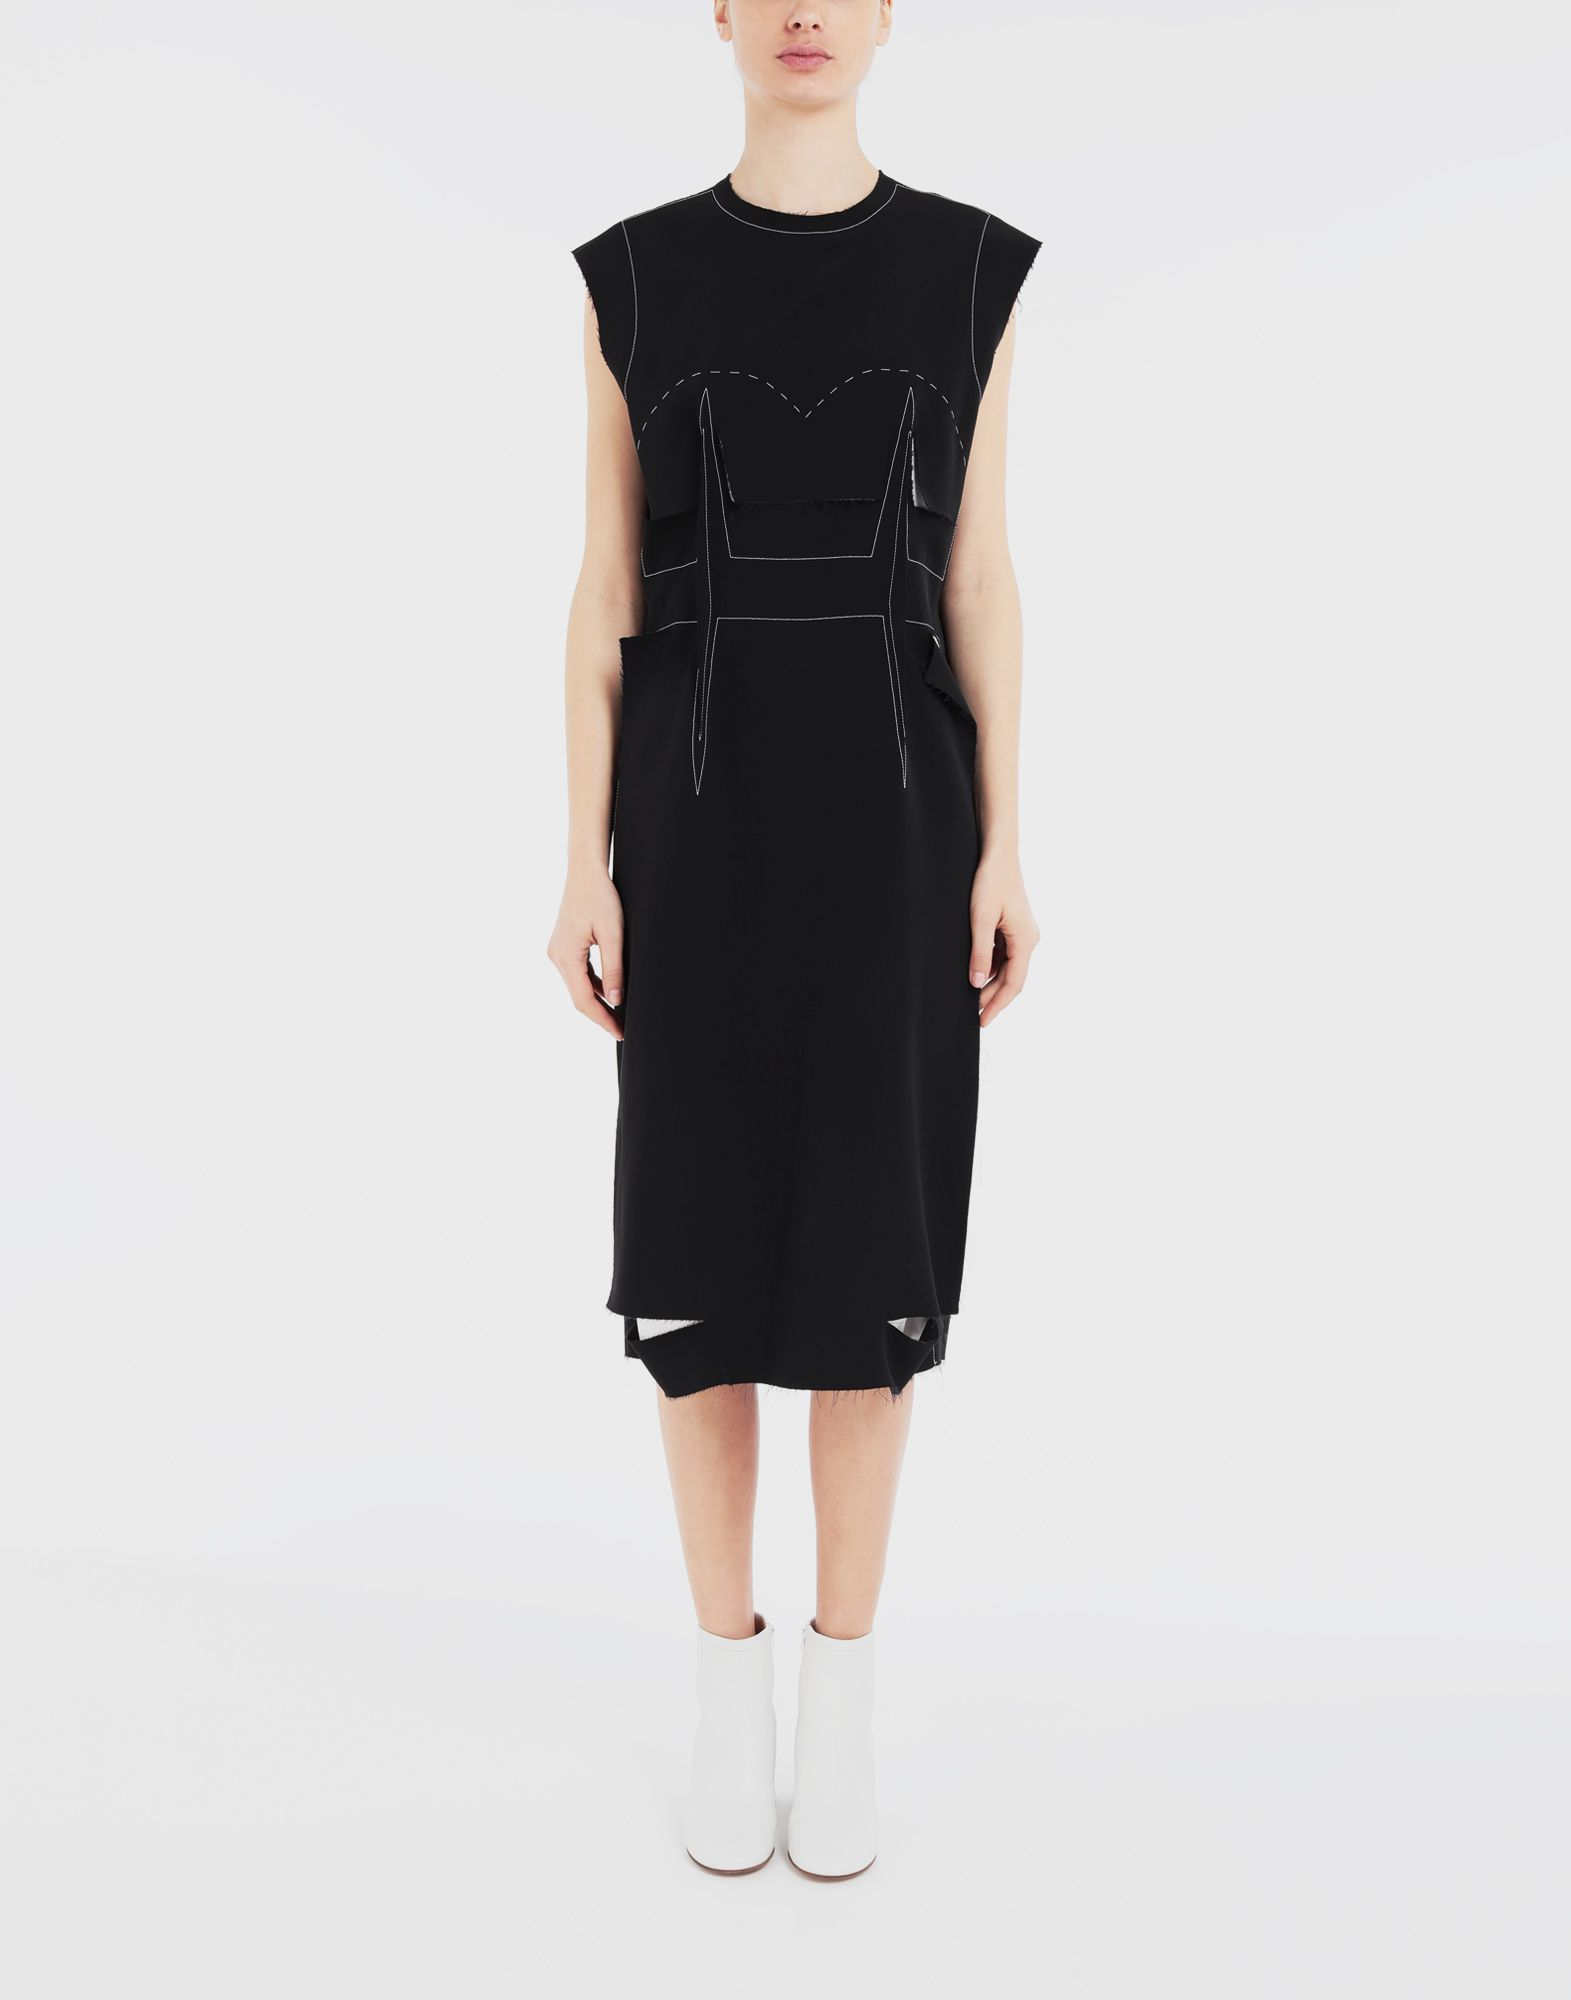 MAISON MARGIELA Décortiqué embroidered dress 3/4 length dress Woman r